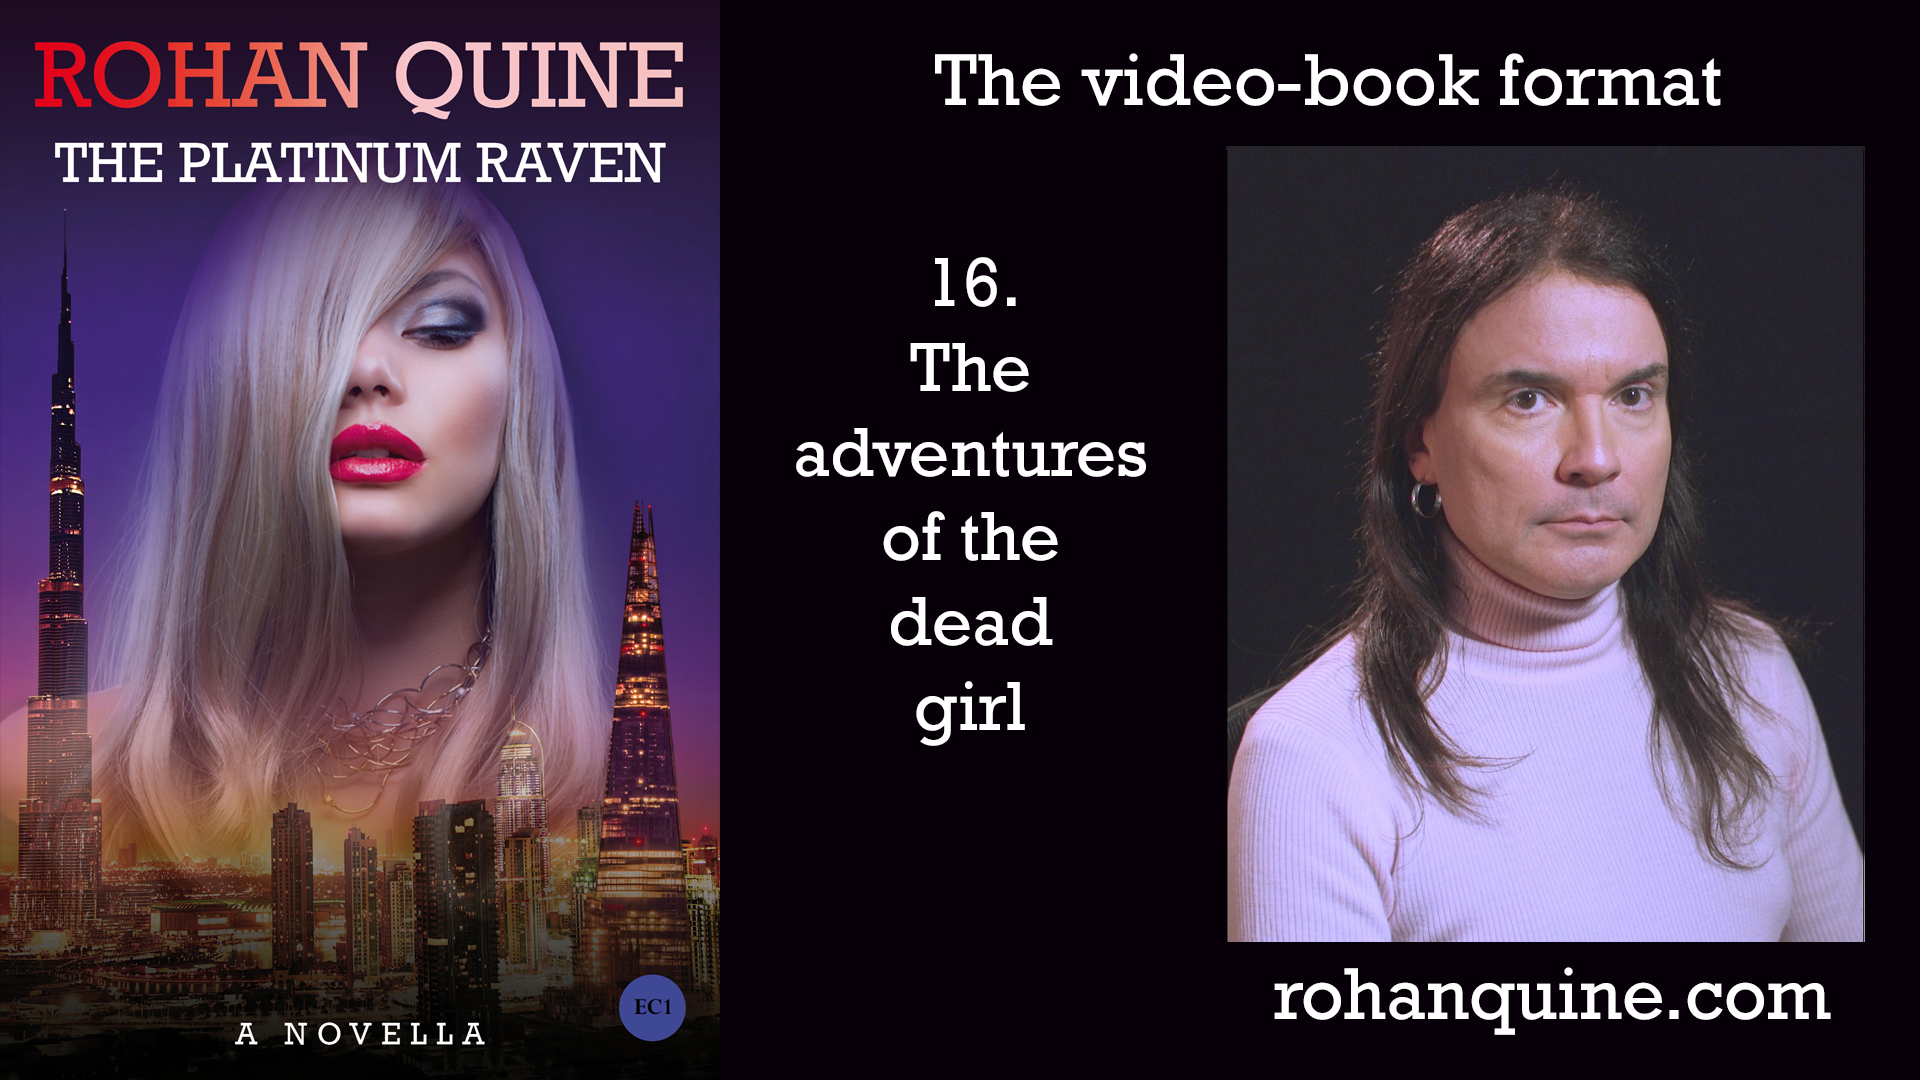 THE PLATINUM RAVEN by Rohan Quine - video-book format - chapter 16